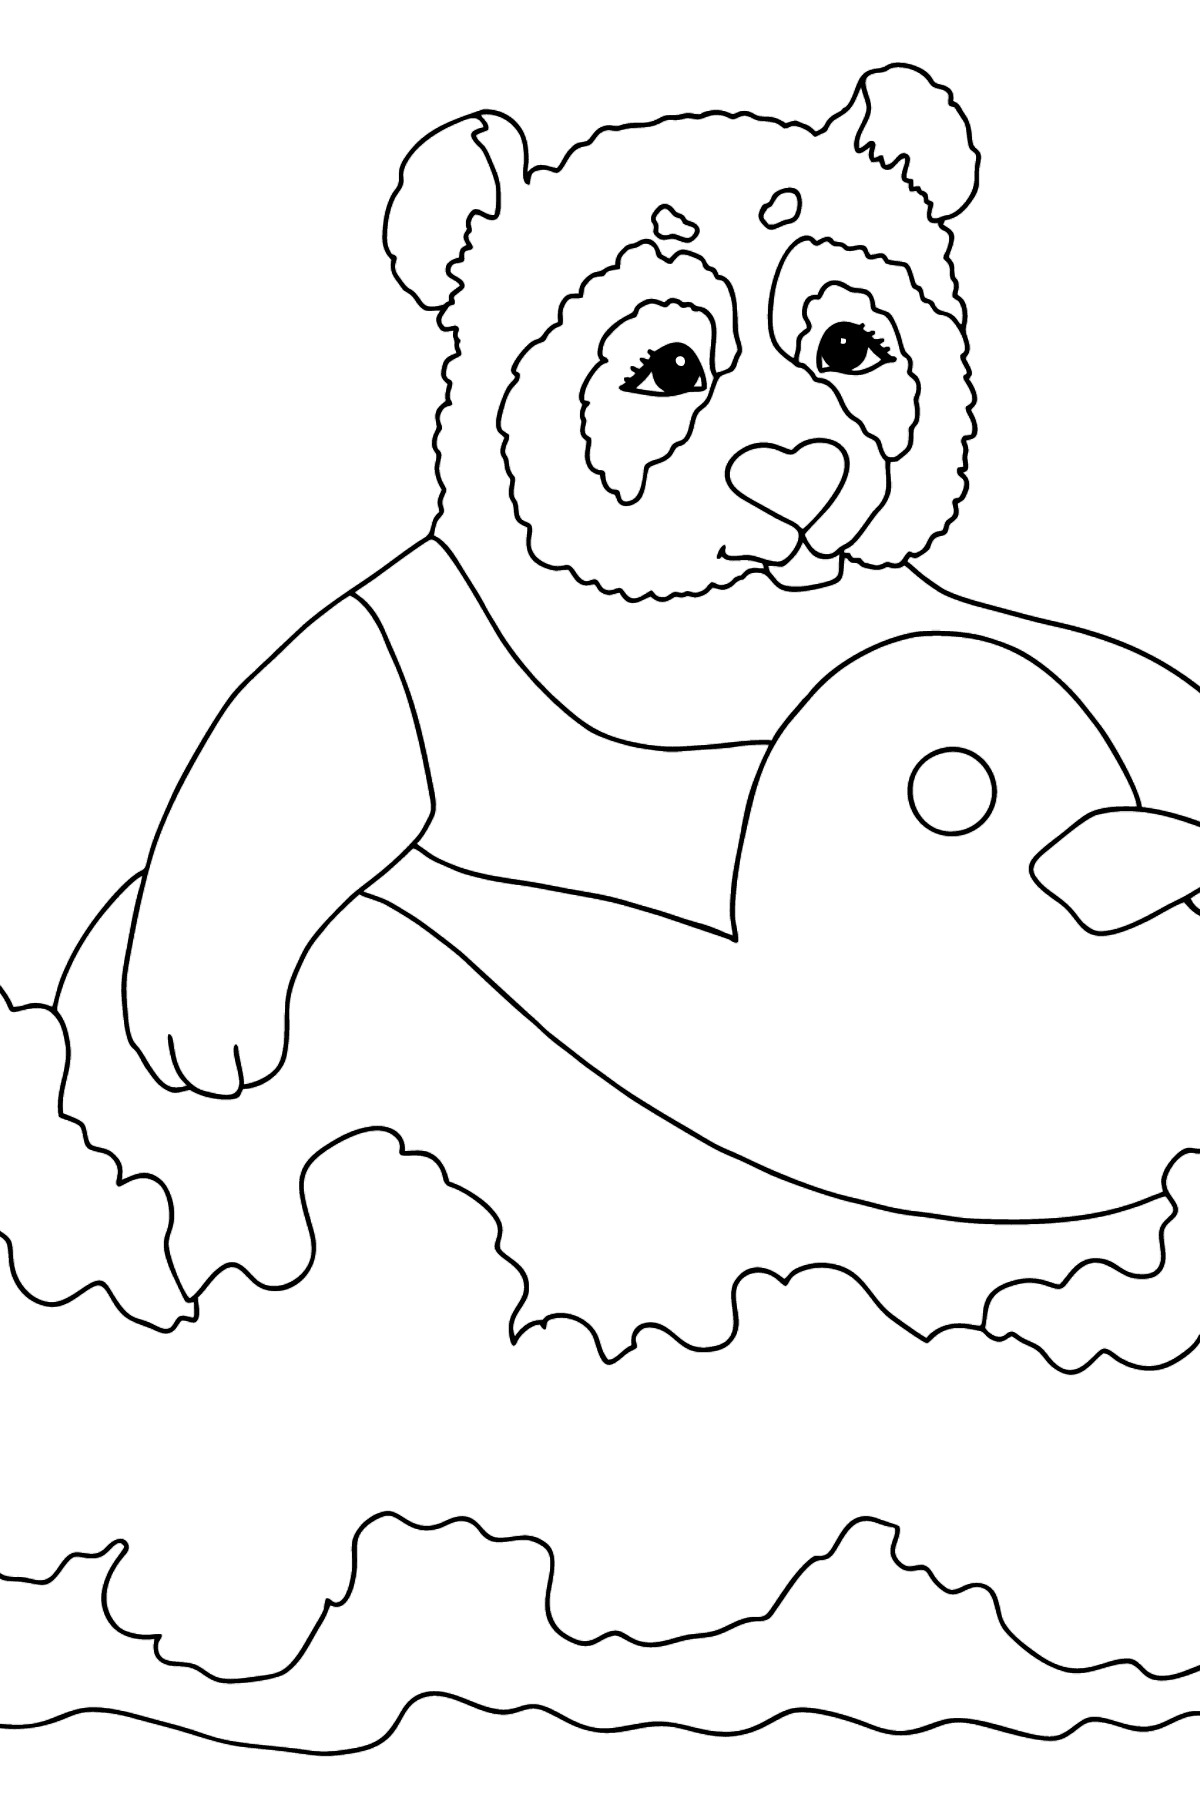 Coloring Picture - A Panda with a Lifebuoy - Coloring Pages for Kids